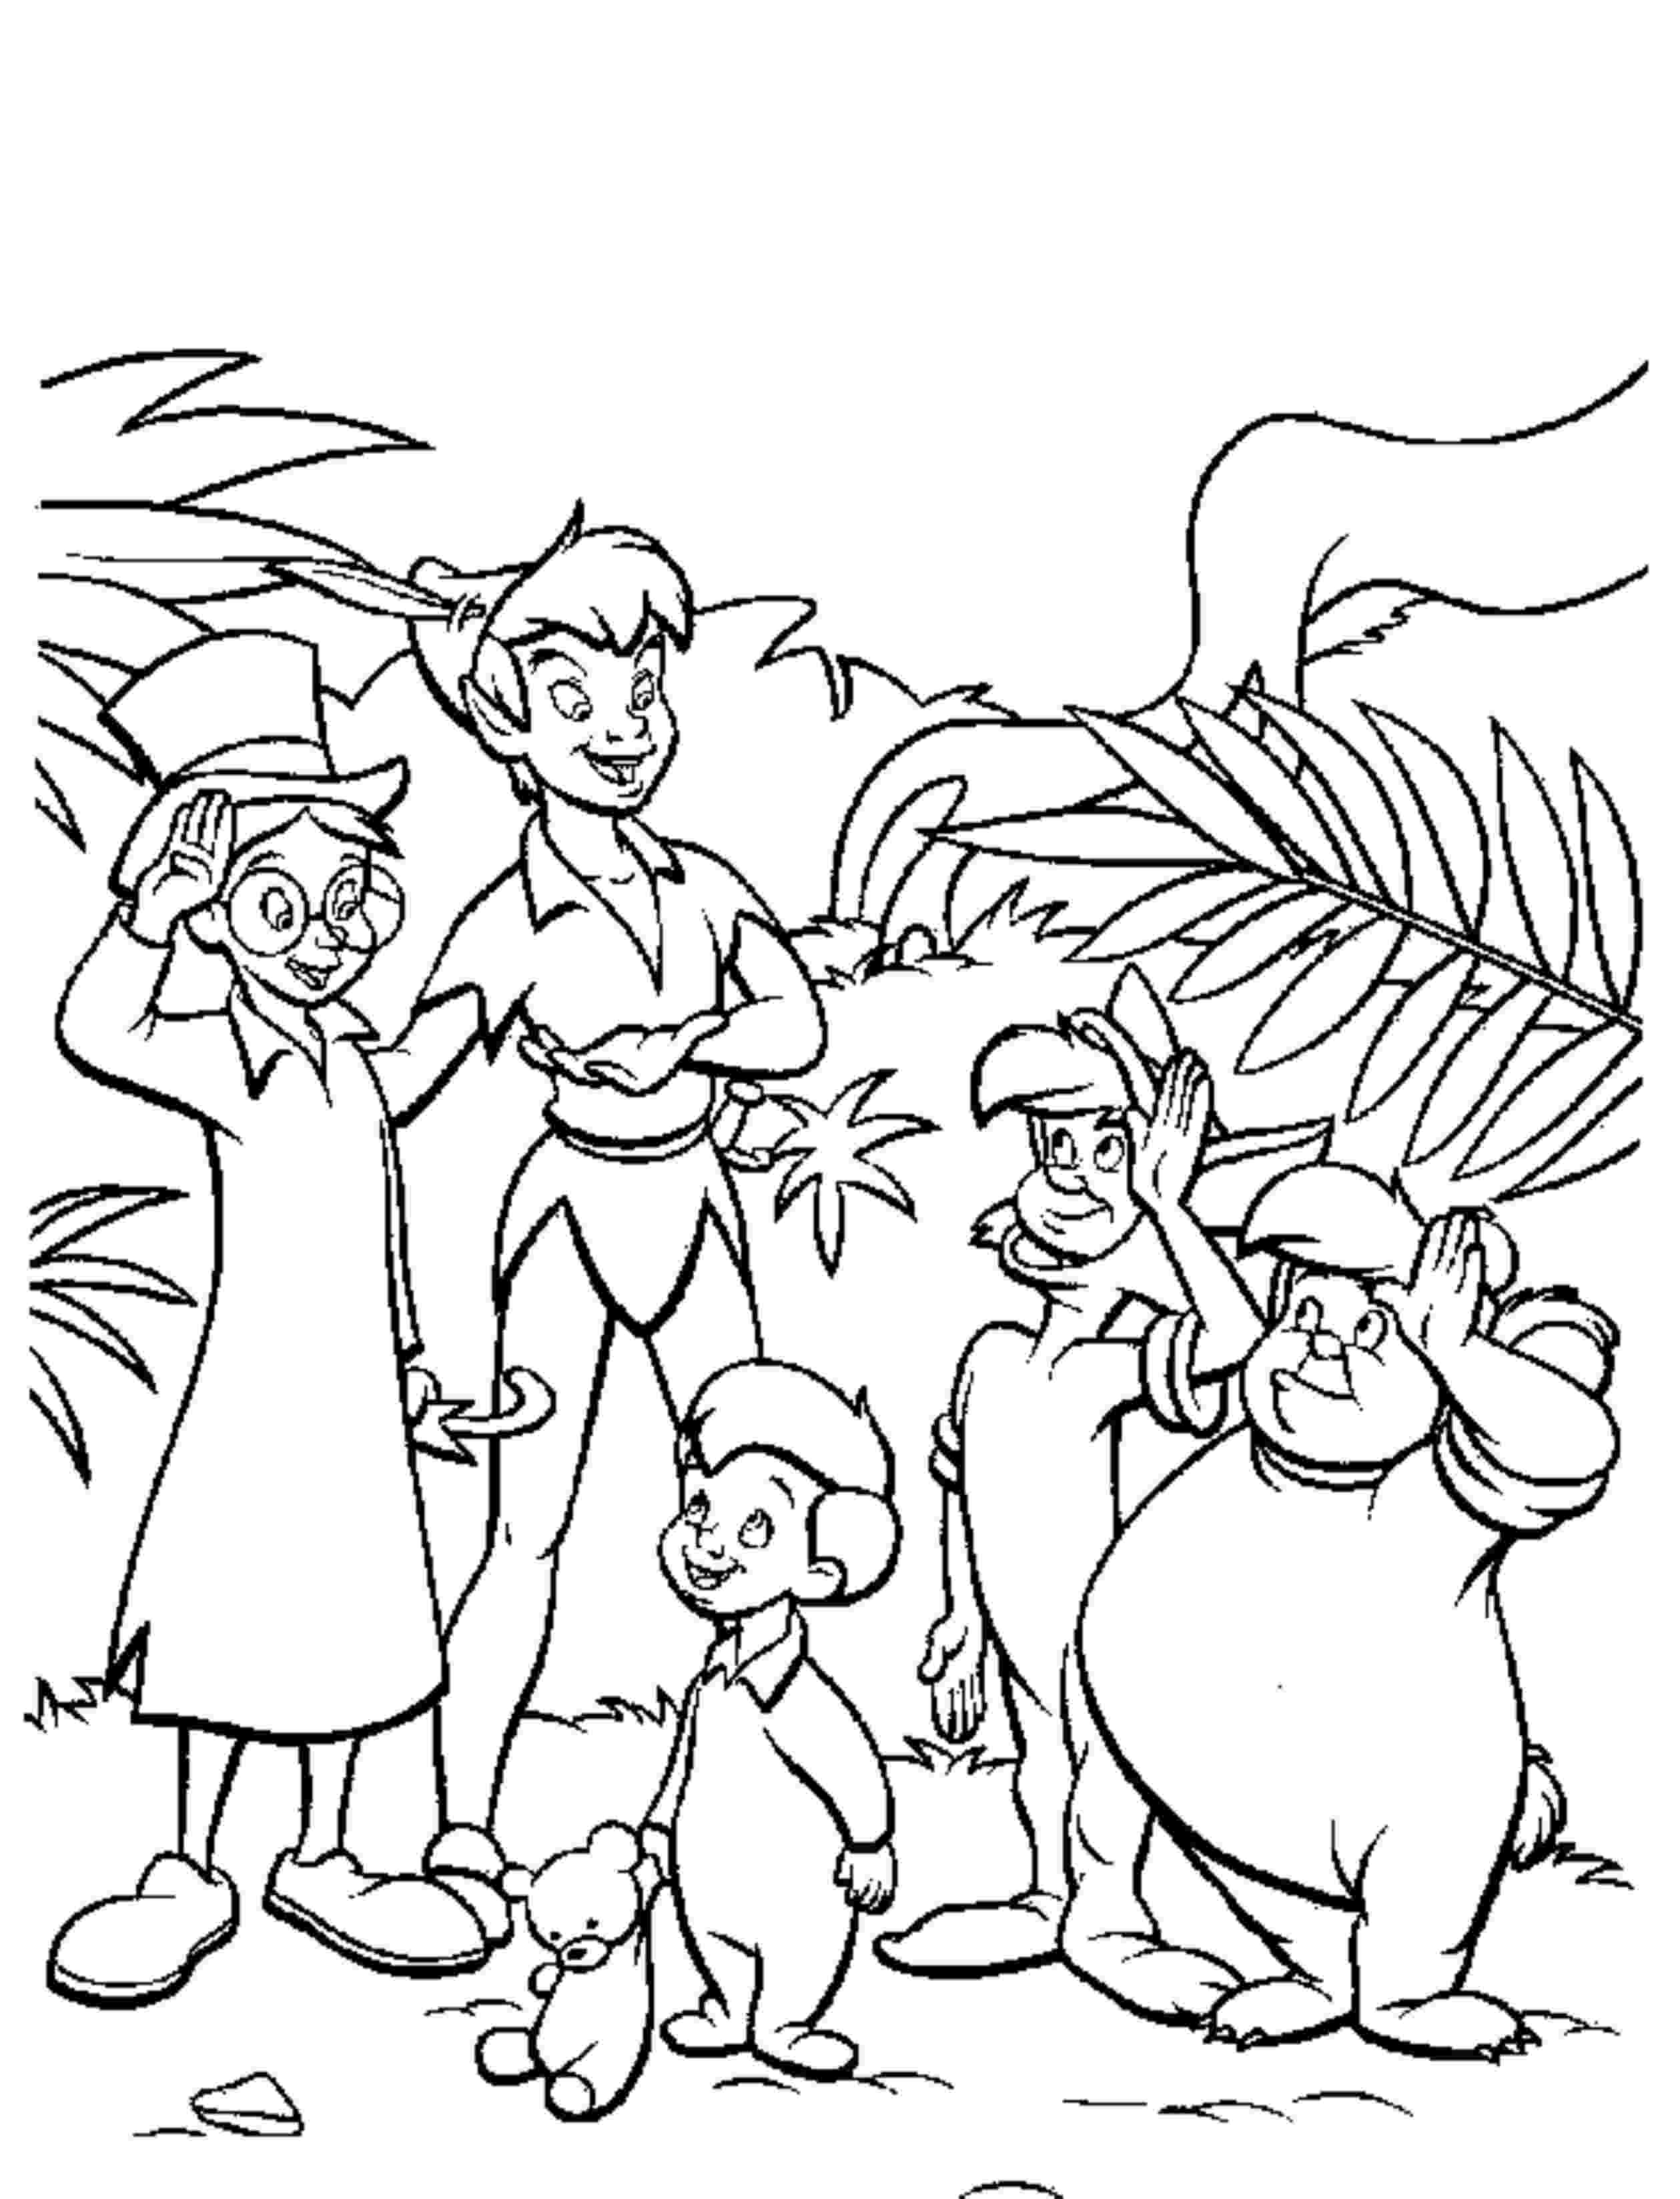 Peter Pan And Tinkerbell Coloring Pages At Getdrawings Com Free